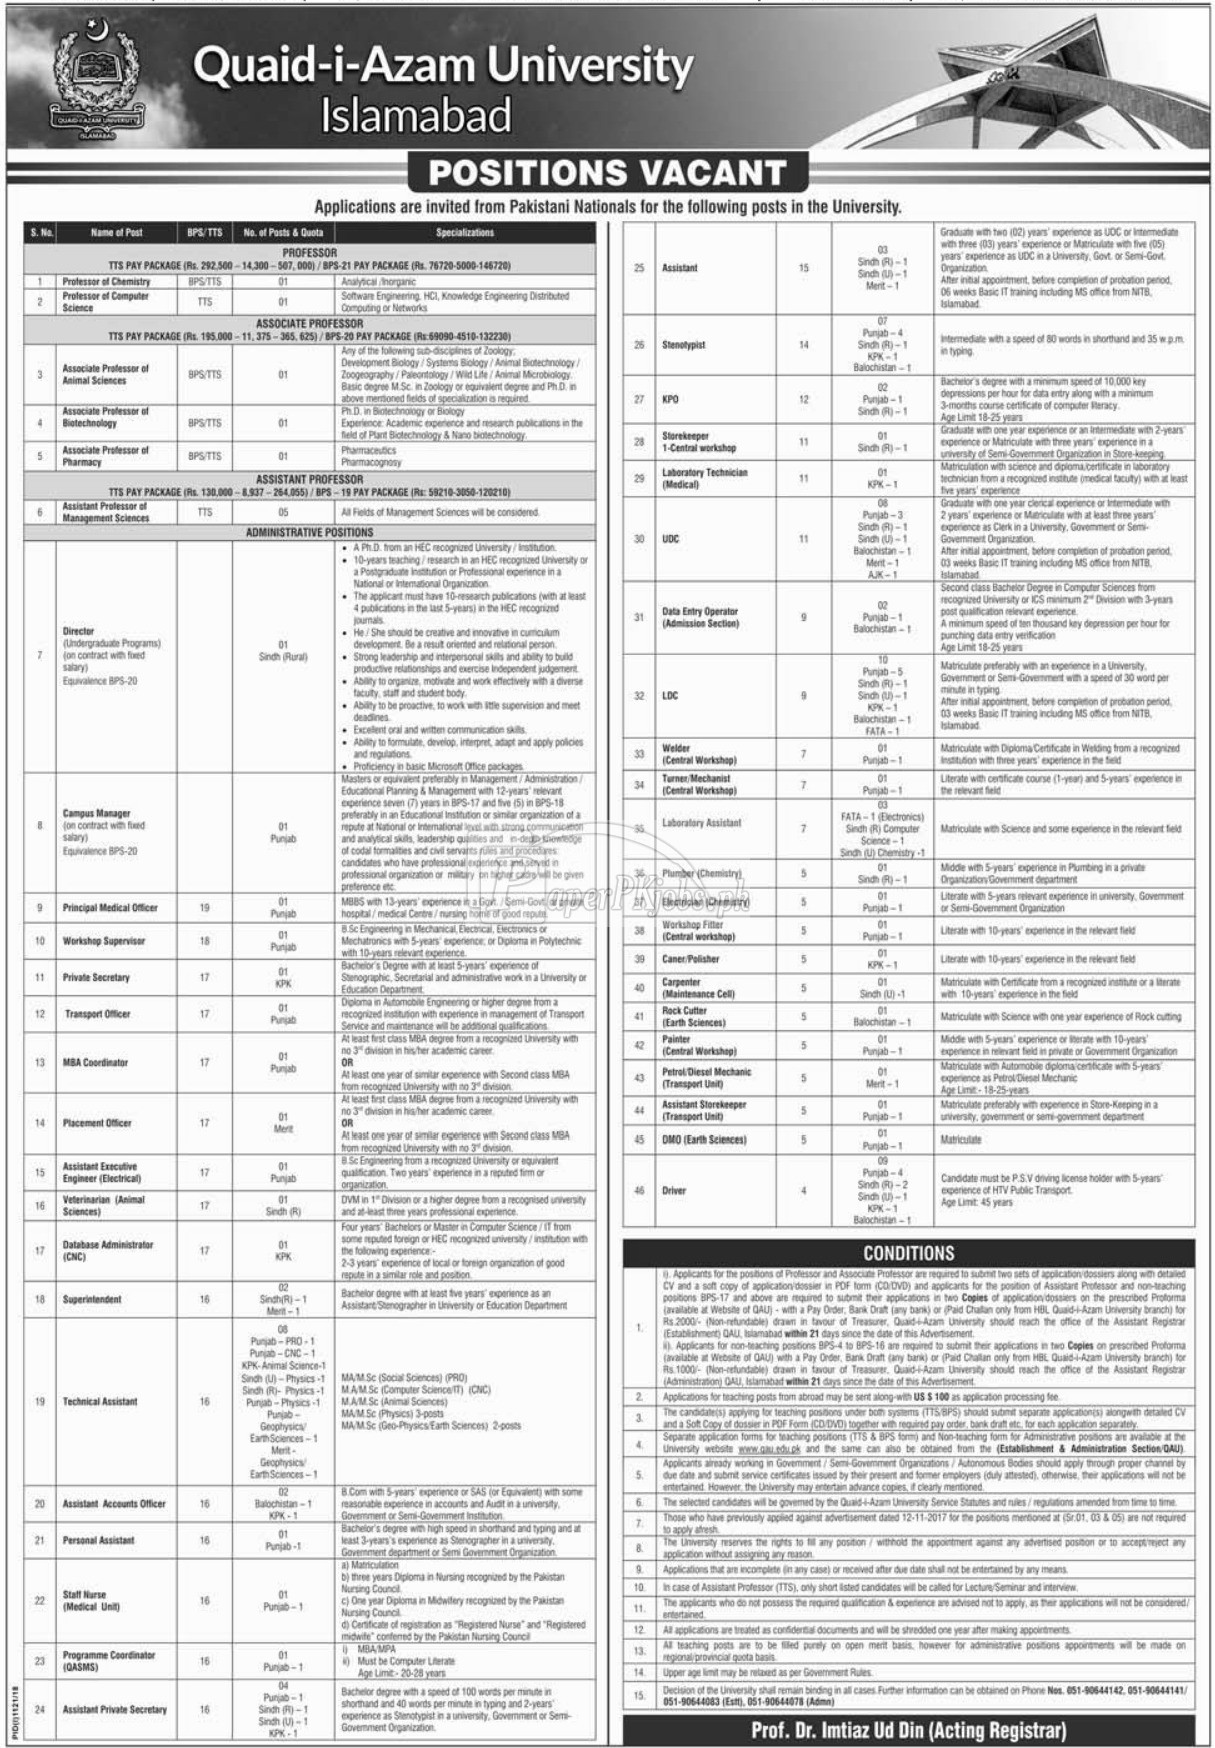 Quaid-i-Azam University Islamabad Jobs 2018